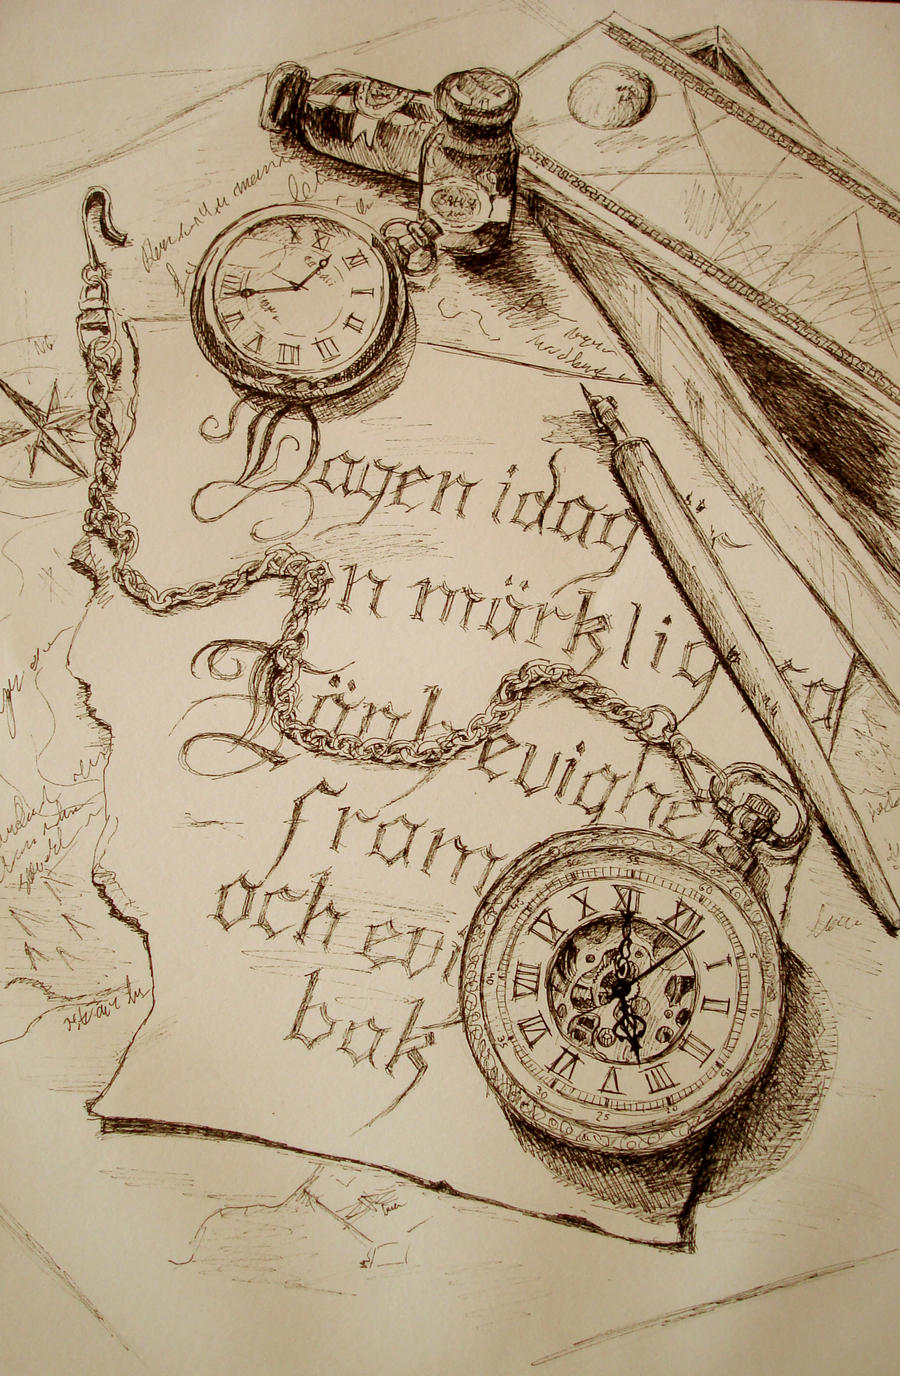 Sketch, pocket watch by Ulltotten on DeviantArt